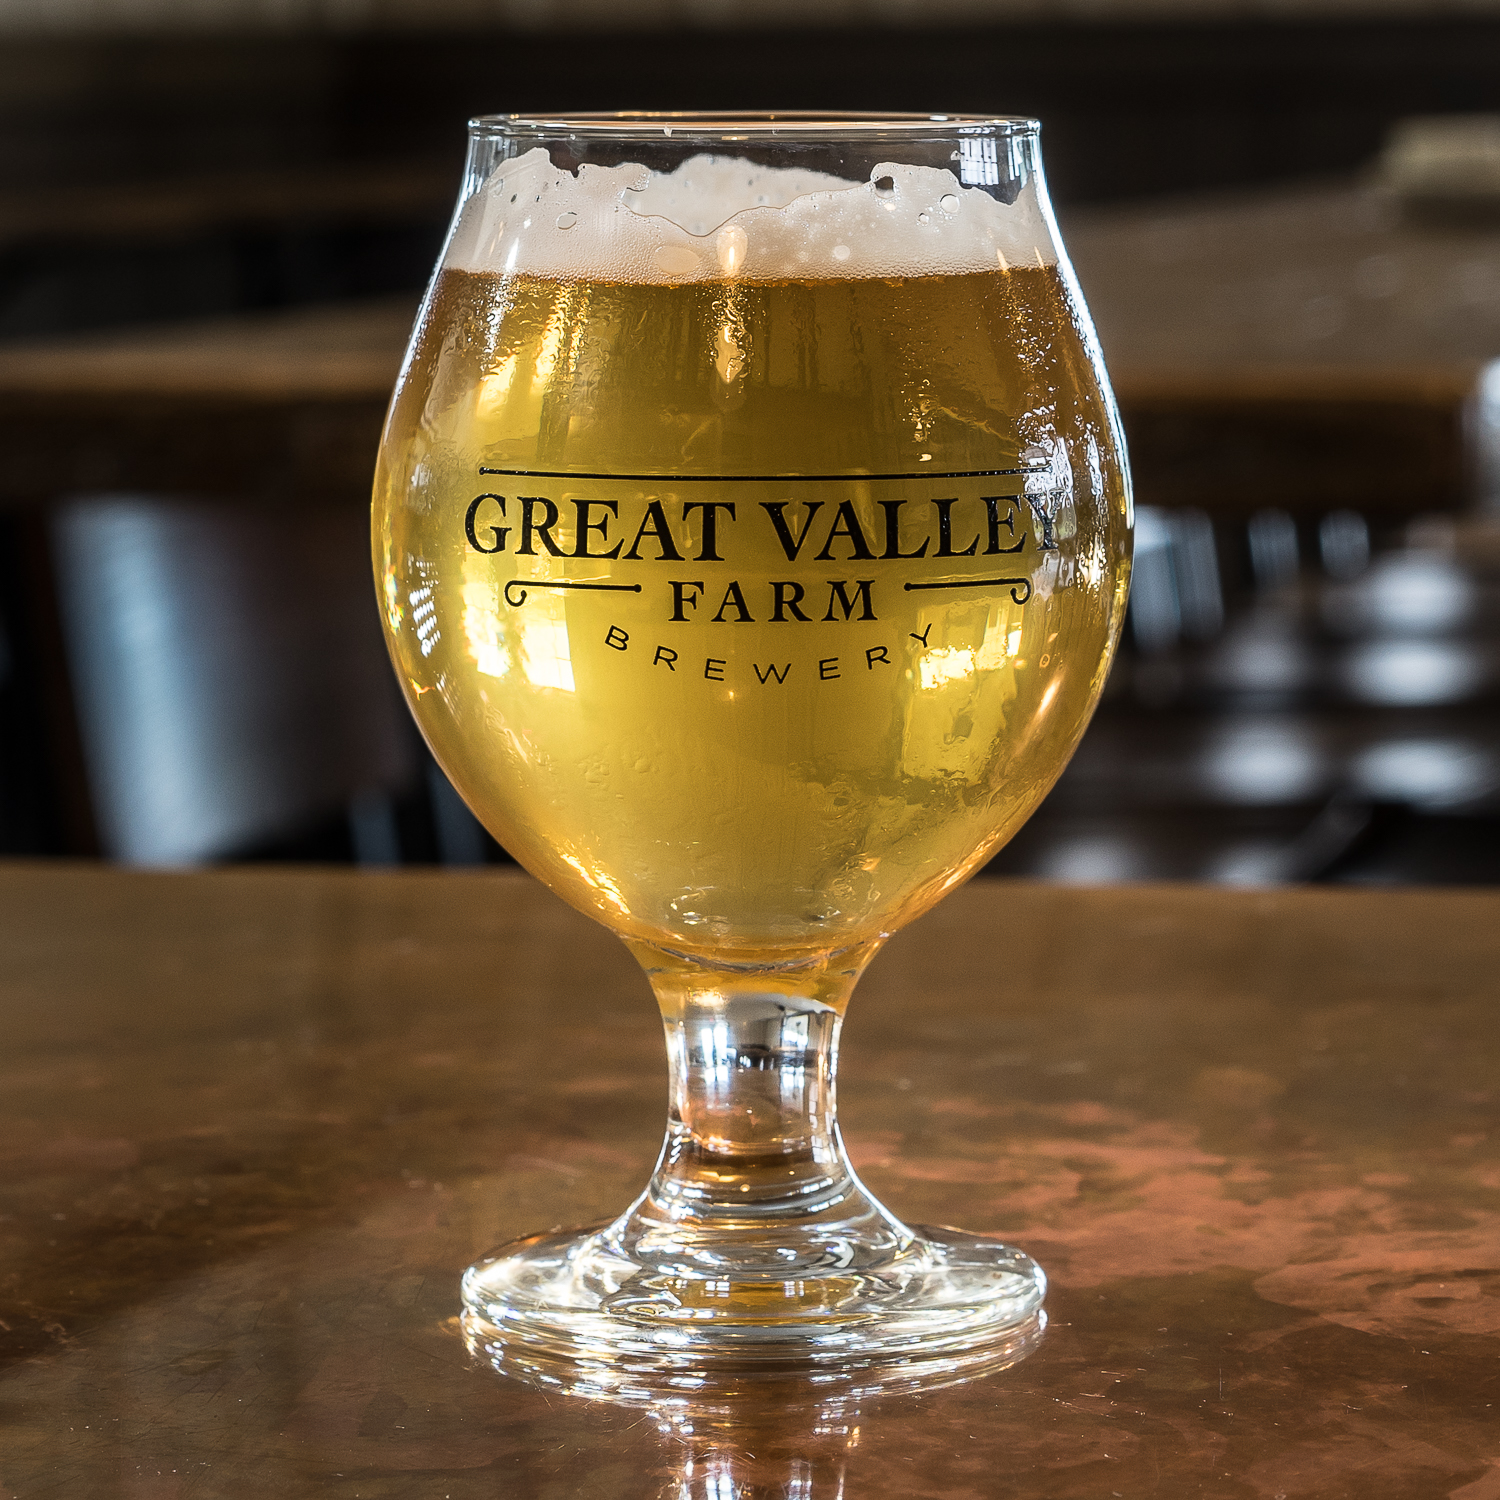 - What attracted me to Great Valley Farm is the fact that they love and brew Belgian style ales. A must-try is the Tardif Saison.